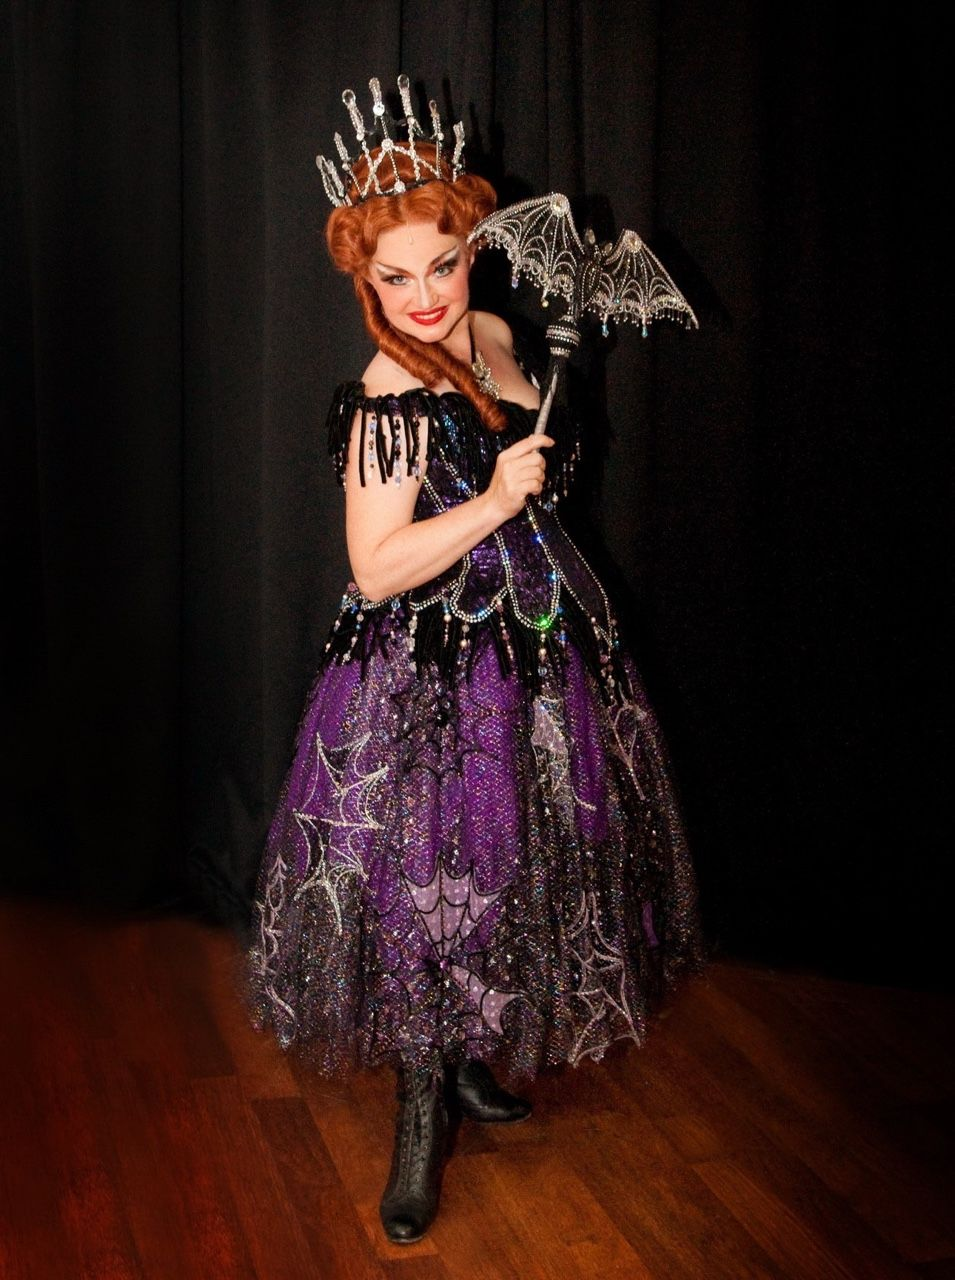 Burlesque Babe Costumes, Can Can Dancers or Showgirl Costumes for Women. What do you prefer to wear on Halloween? At wilmergolding6jn1.gq we have them all.